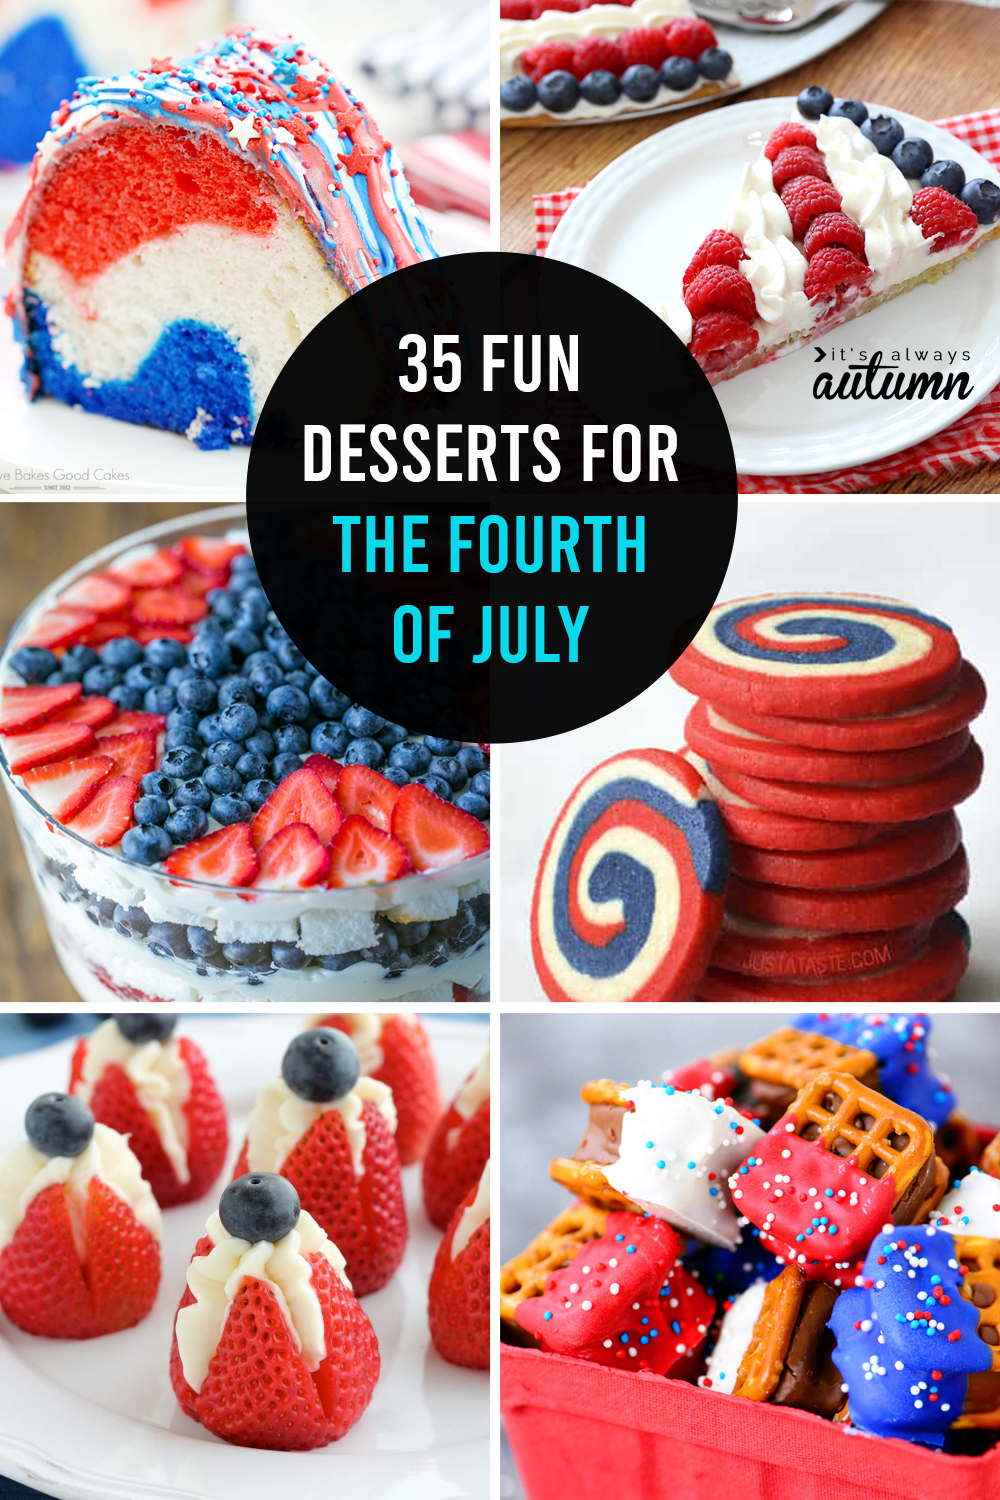 35 red, white and blue desserts for the 4th of July!